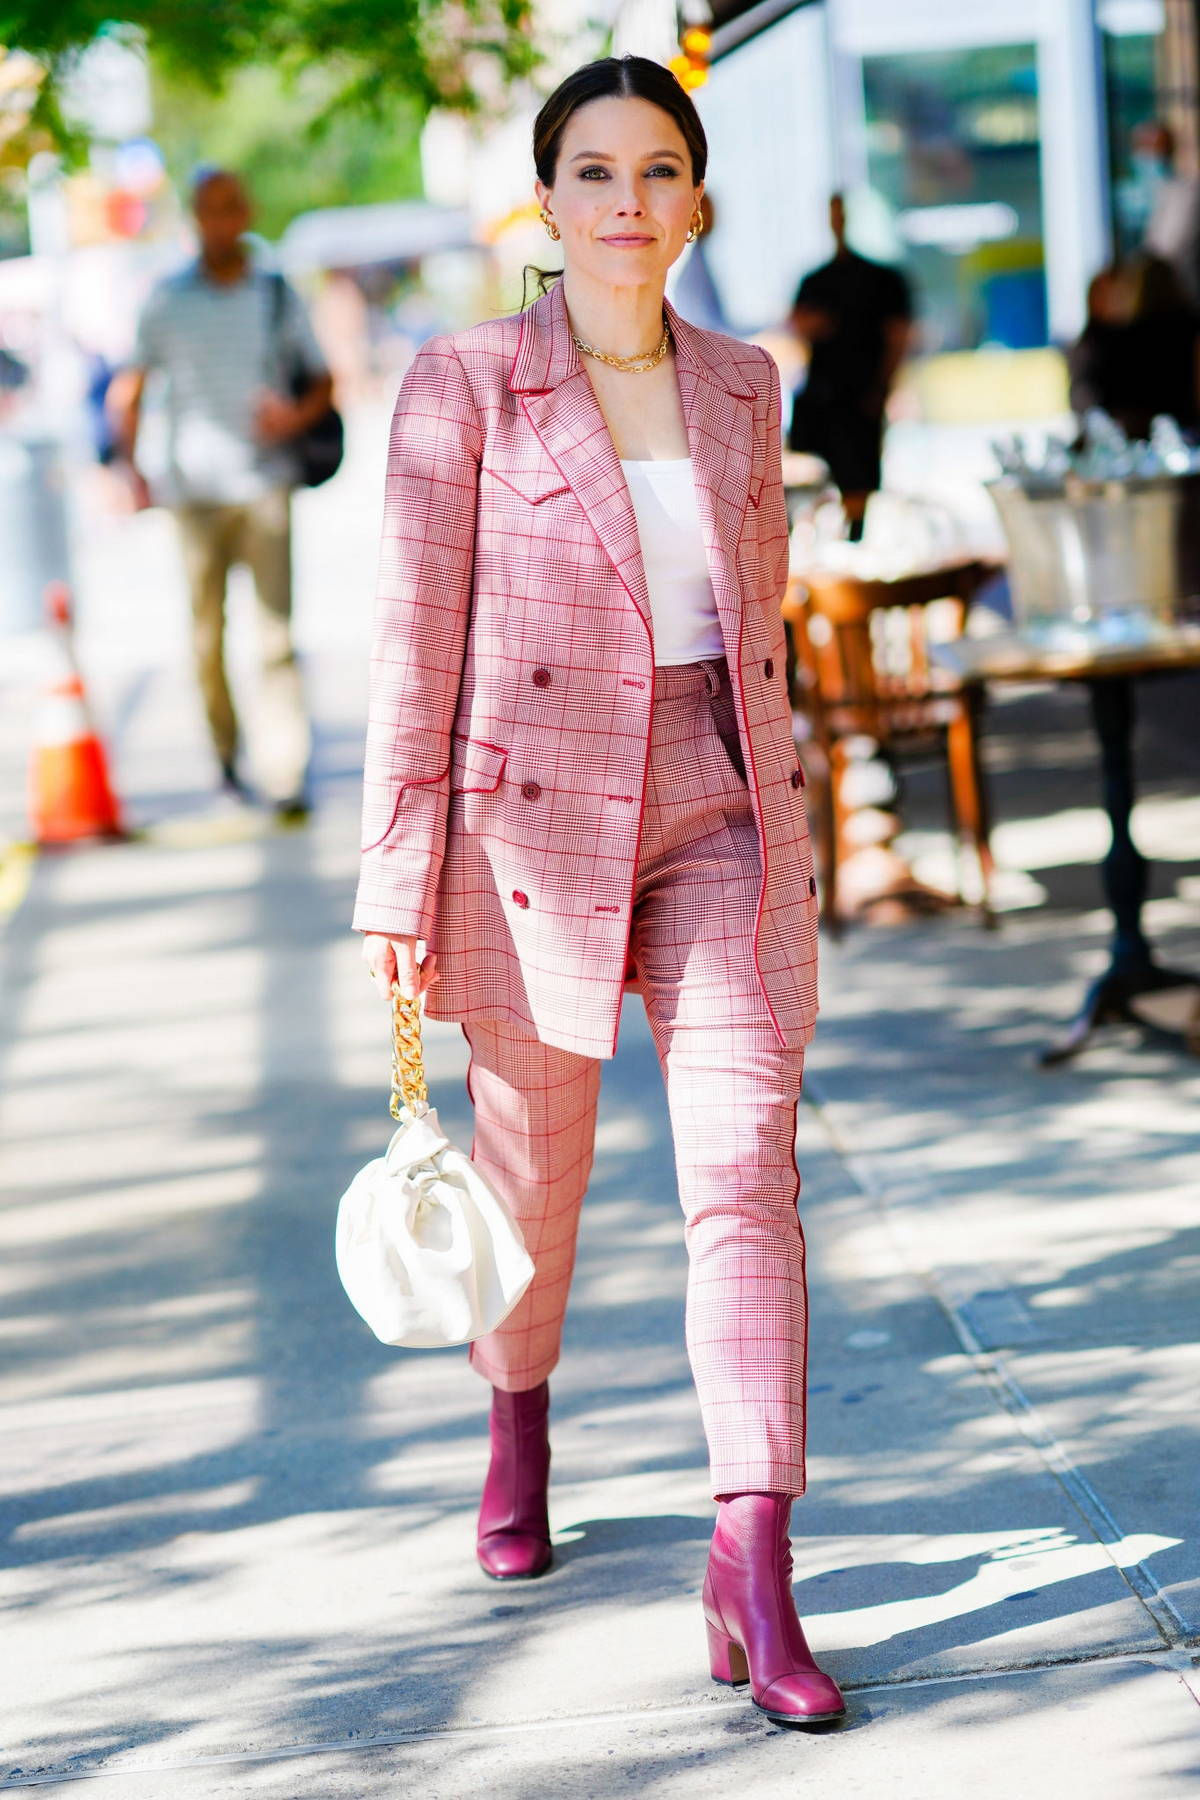 Sophia Bush looks stylish in a pink plaid suit with matching boots while stepping out in New York City